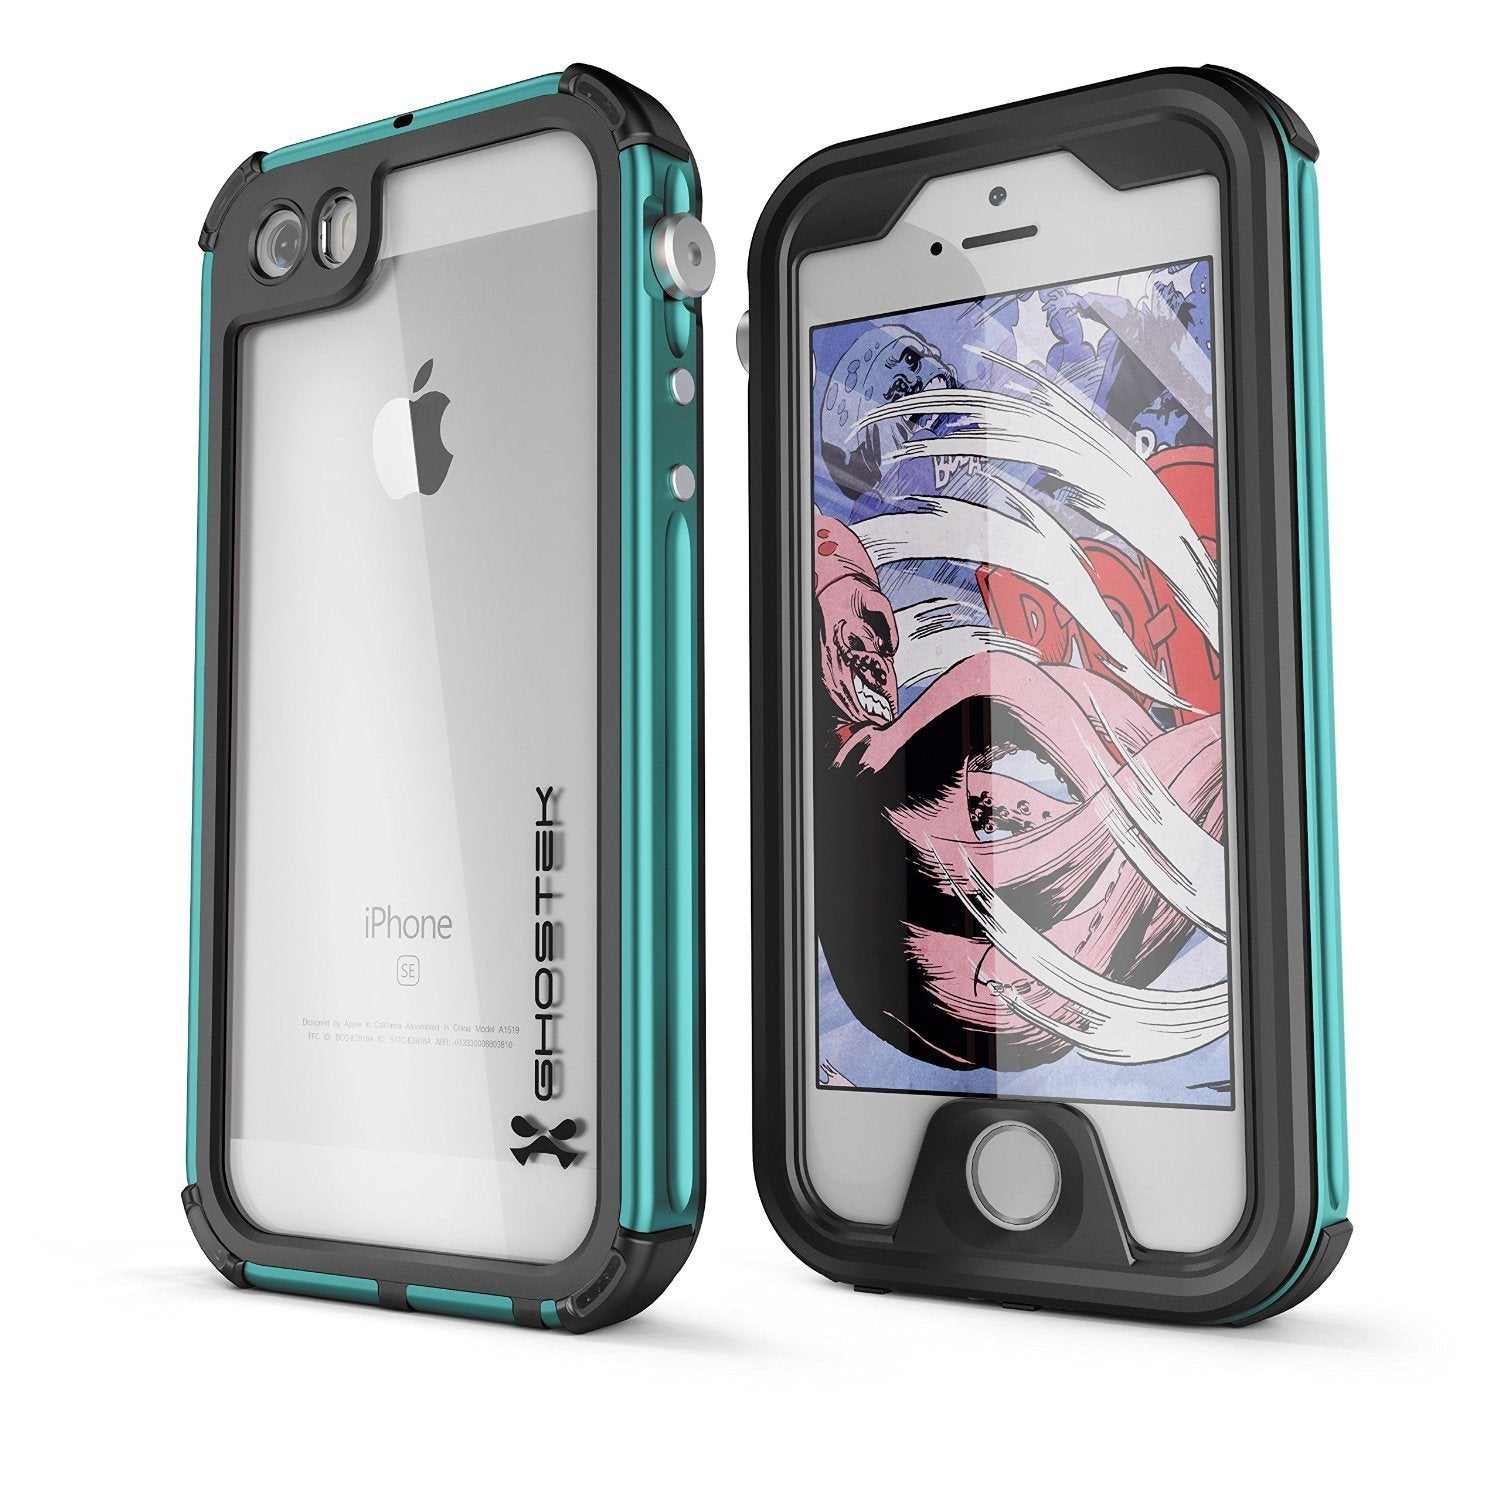 iPhone 7 Waterproof Case, Ghostek® Atomic 3 Series for Apple iPhone 7 | Underwater | Shockproof | Dirt-proof | Snow-proof | Aluminum Frame | Adventure Ready | Ultra Fit | Swimming (Teal)